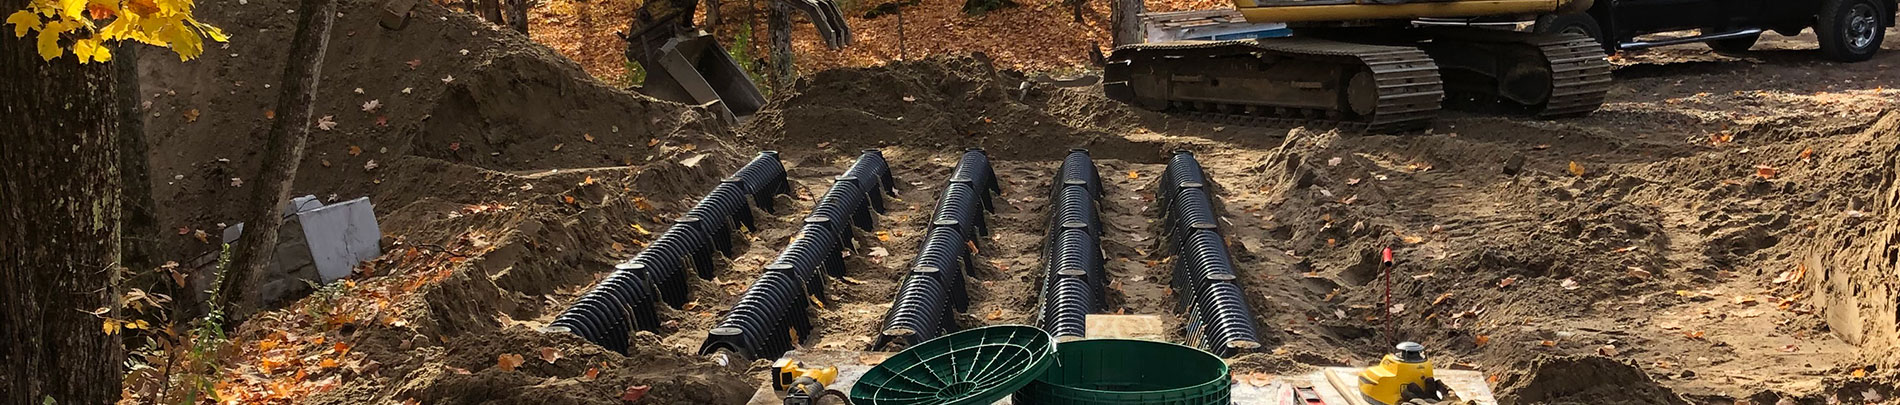 A septic system being installed.